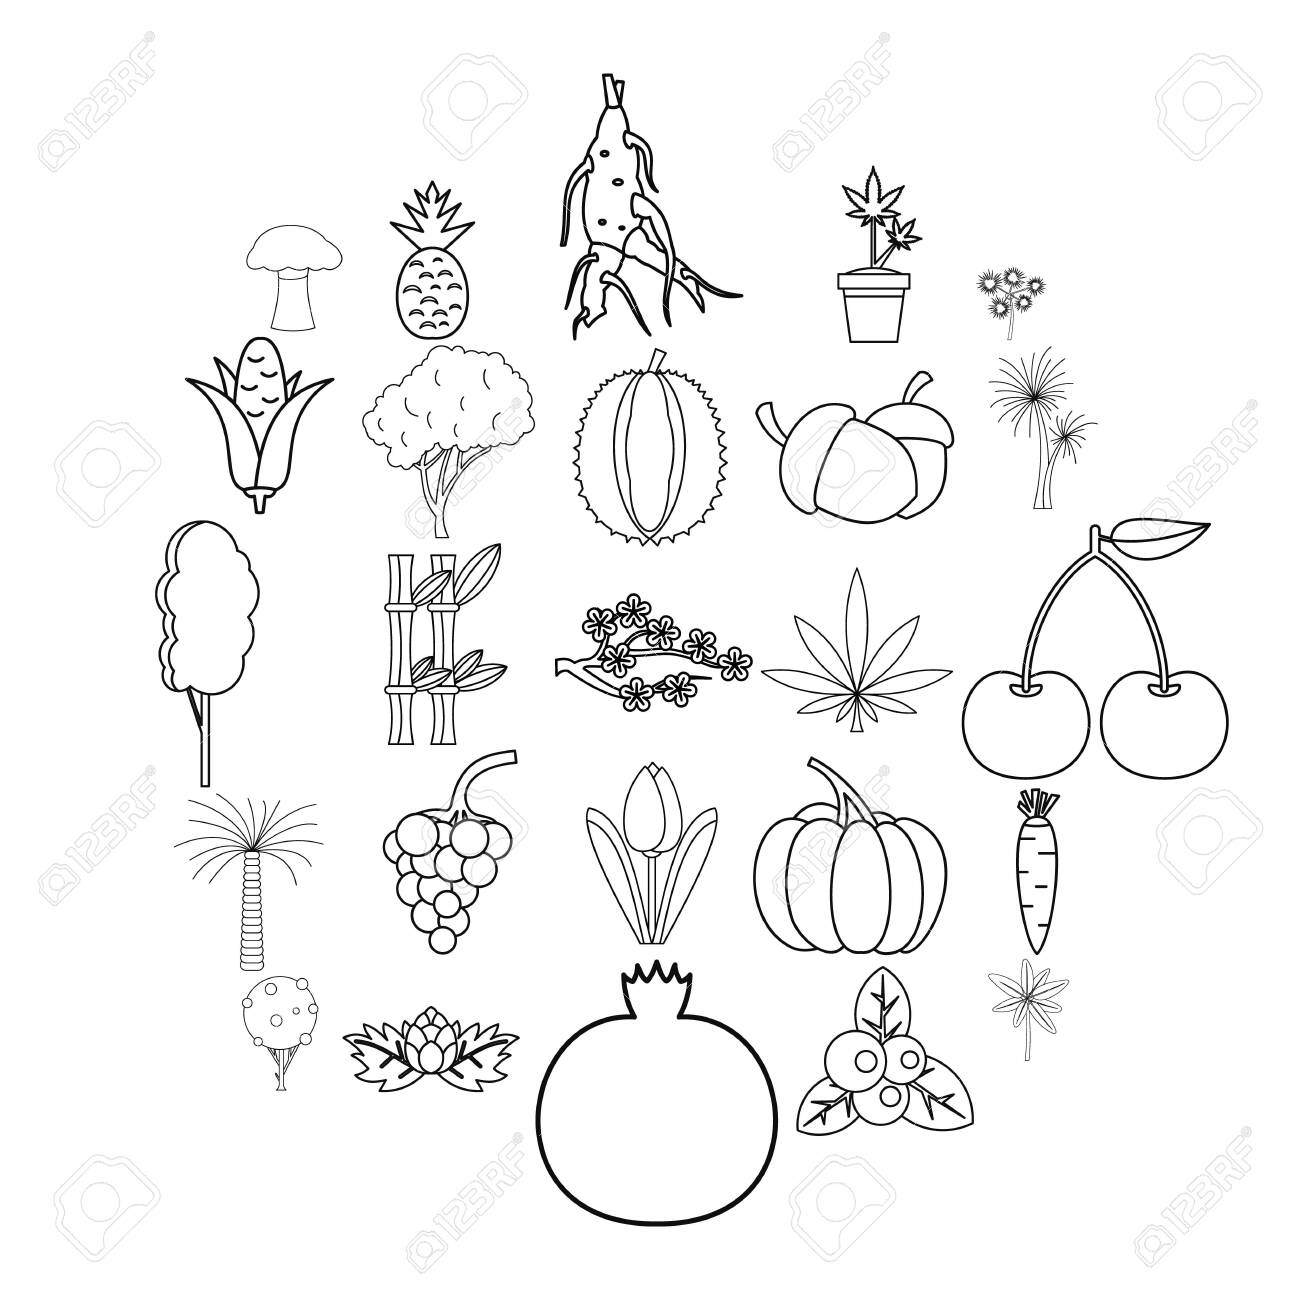 Nicepng provides large related hd transparent png images. Forest Plants Icons Set Outline Set Of 25 Forest Plants Vector Icons For Web Isolated On White Background Royalty Free Cliparts Vectors And Stock Illustration Image 124521225